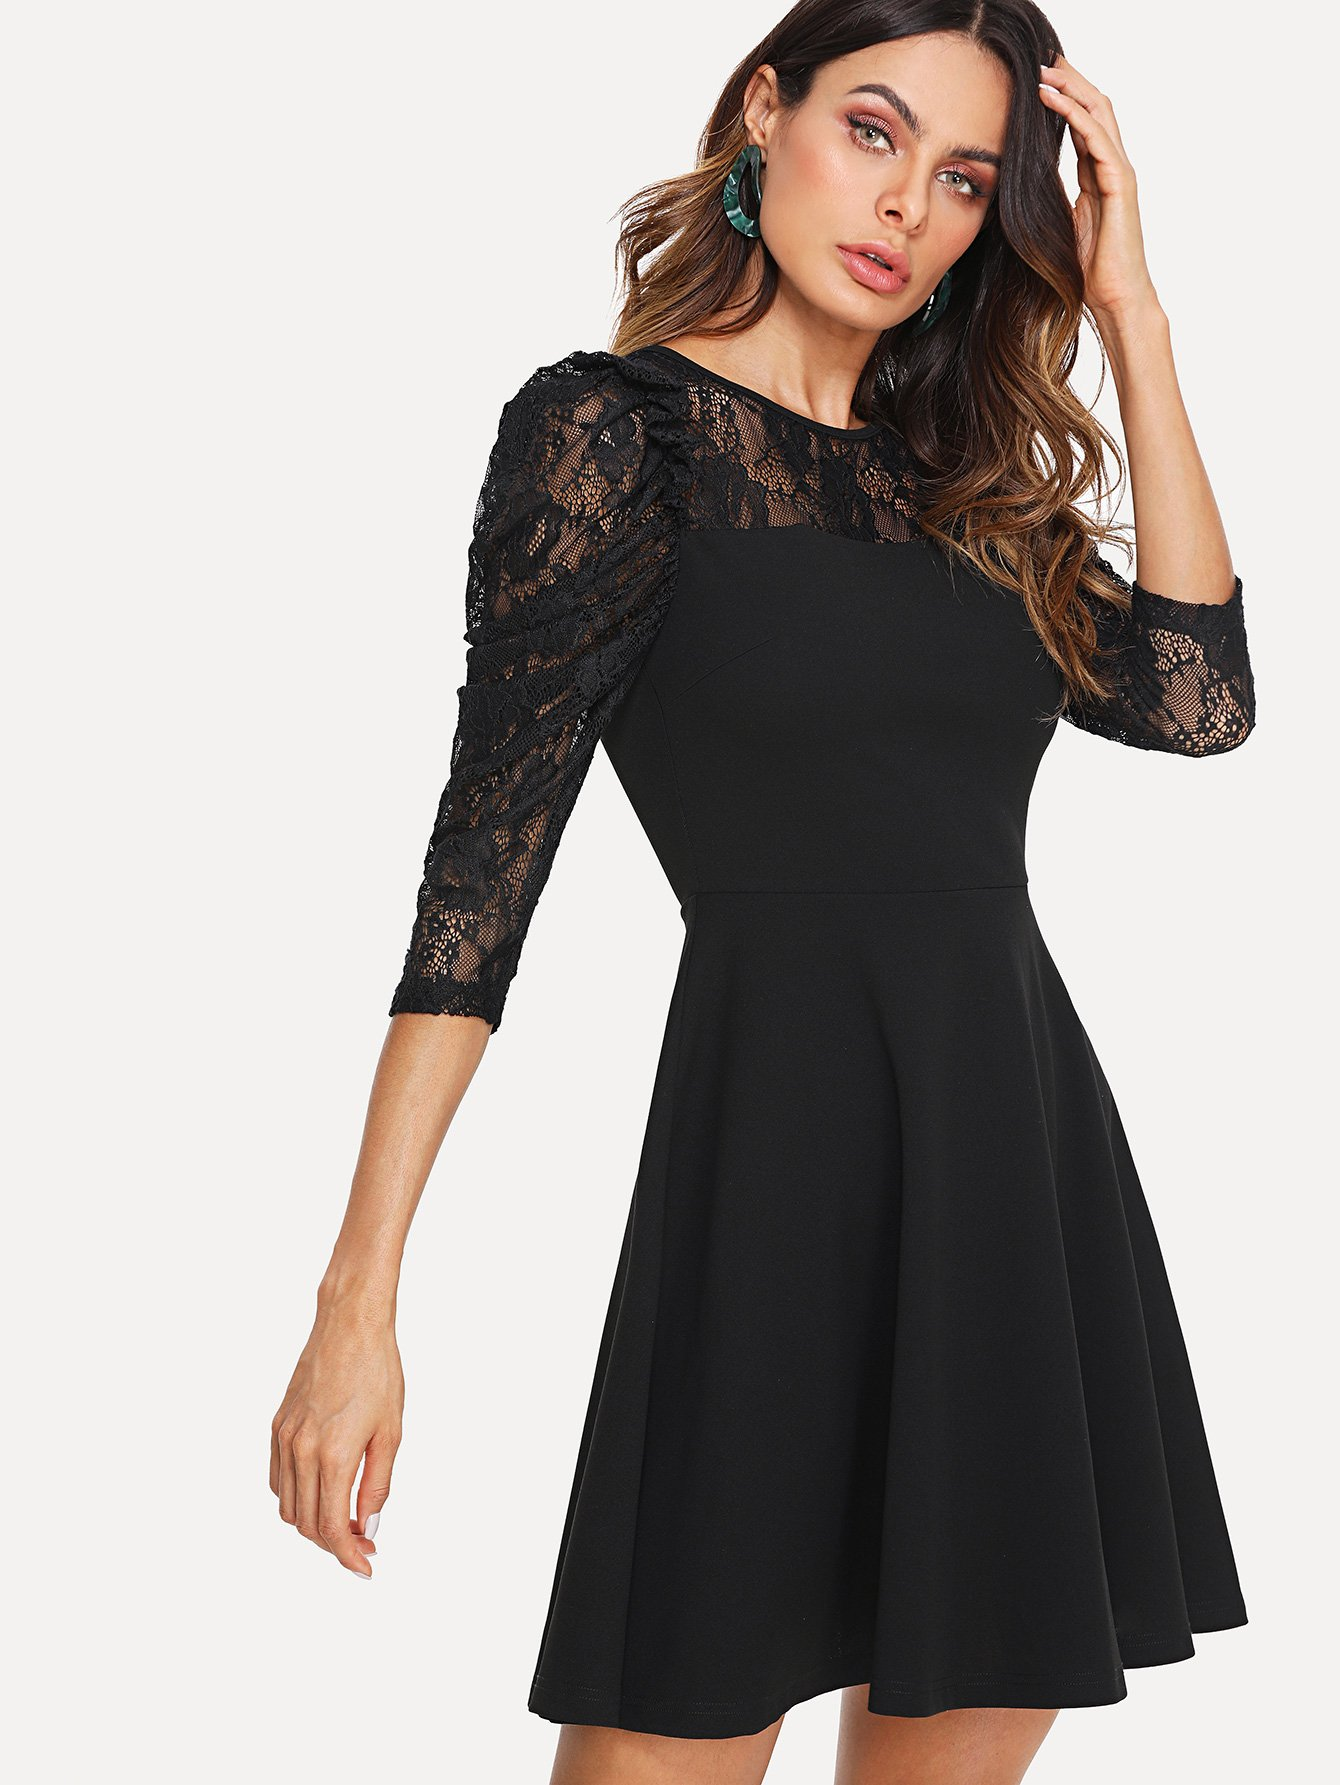 Lace Yoke Puff Sleeve Fit & Flare Dress floral print puff sleeve fit